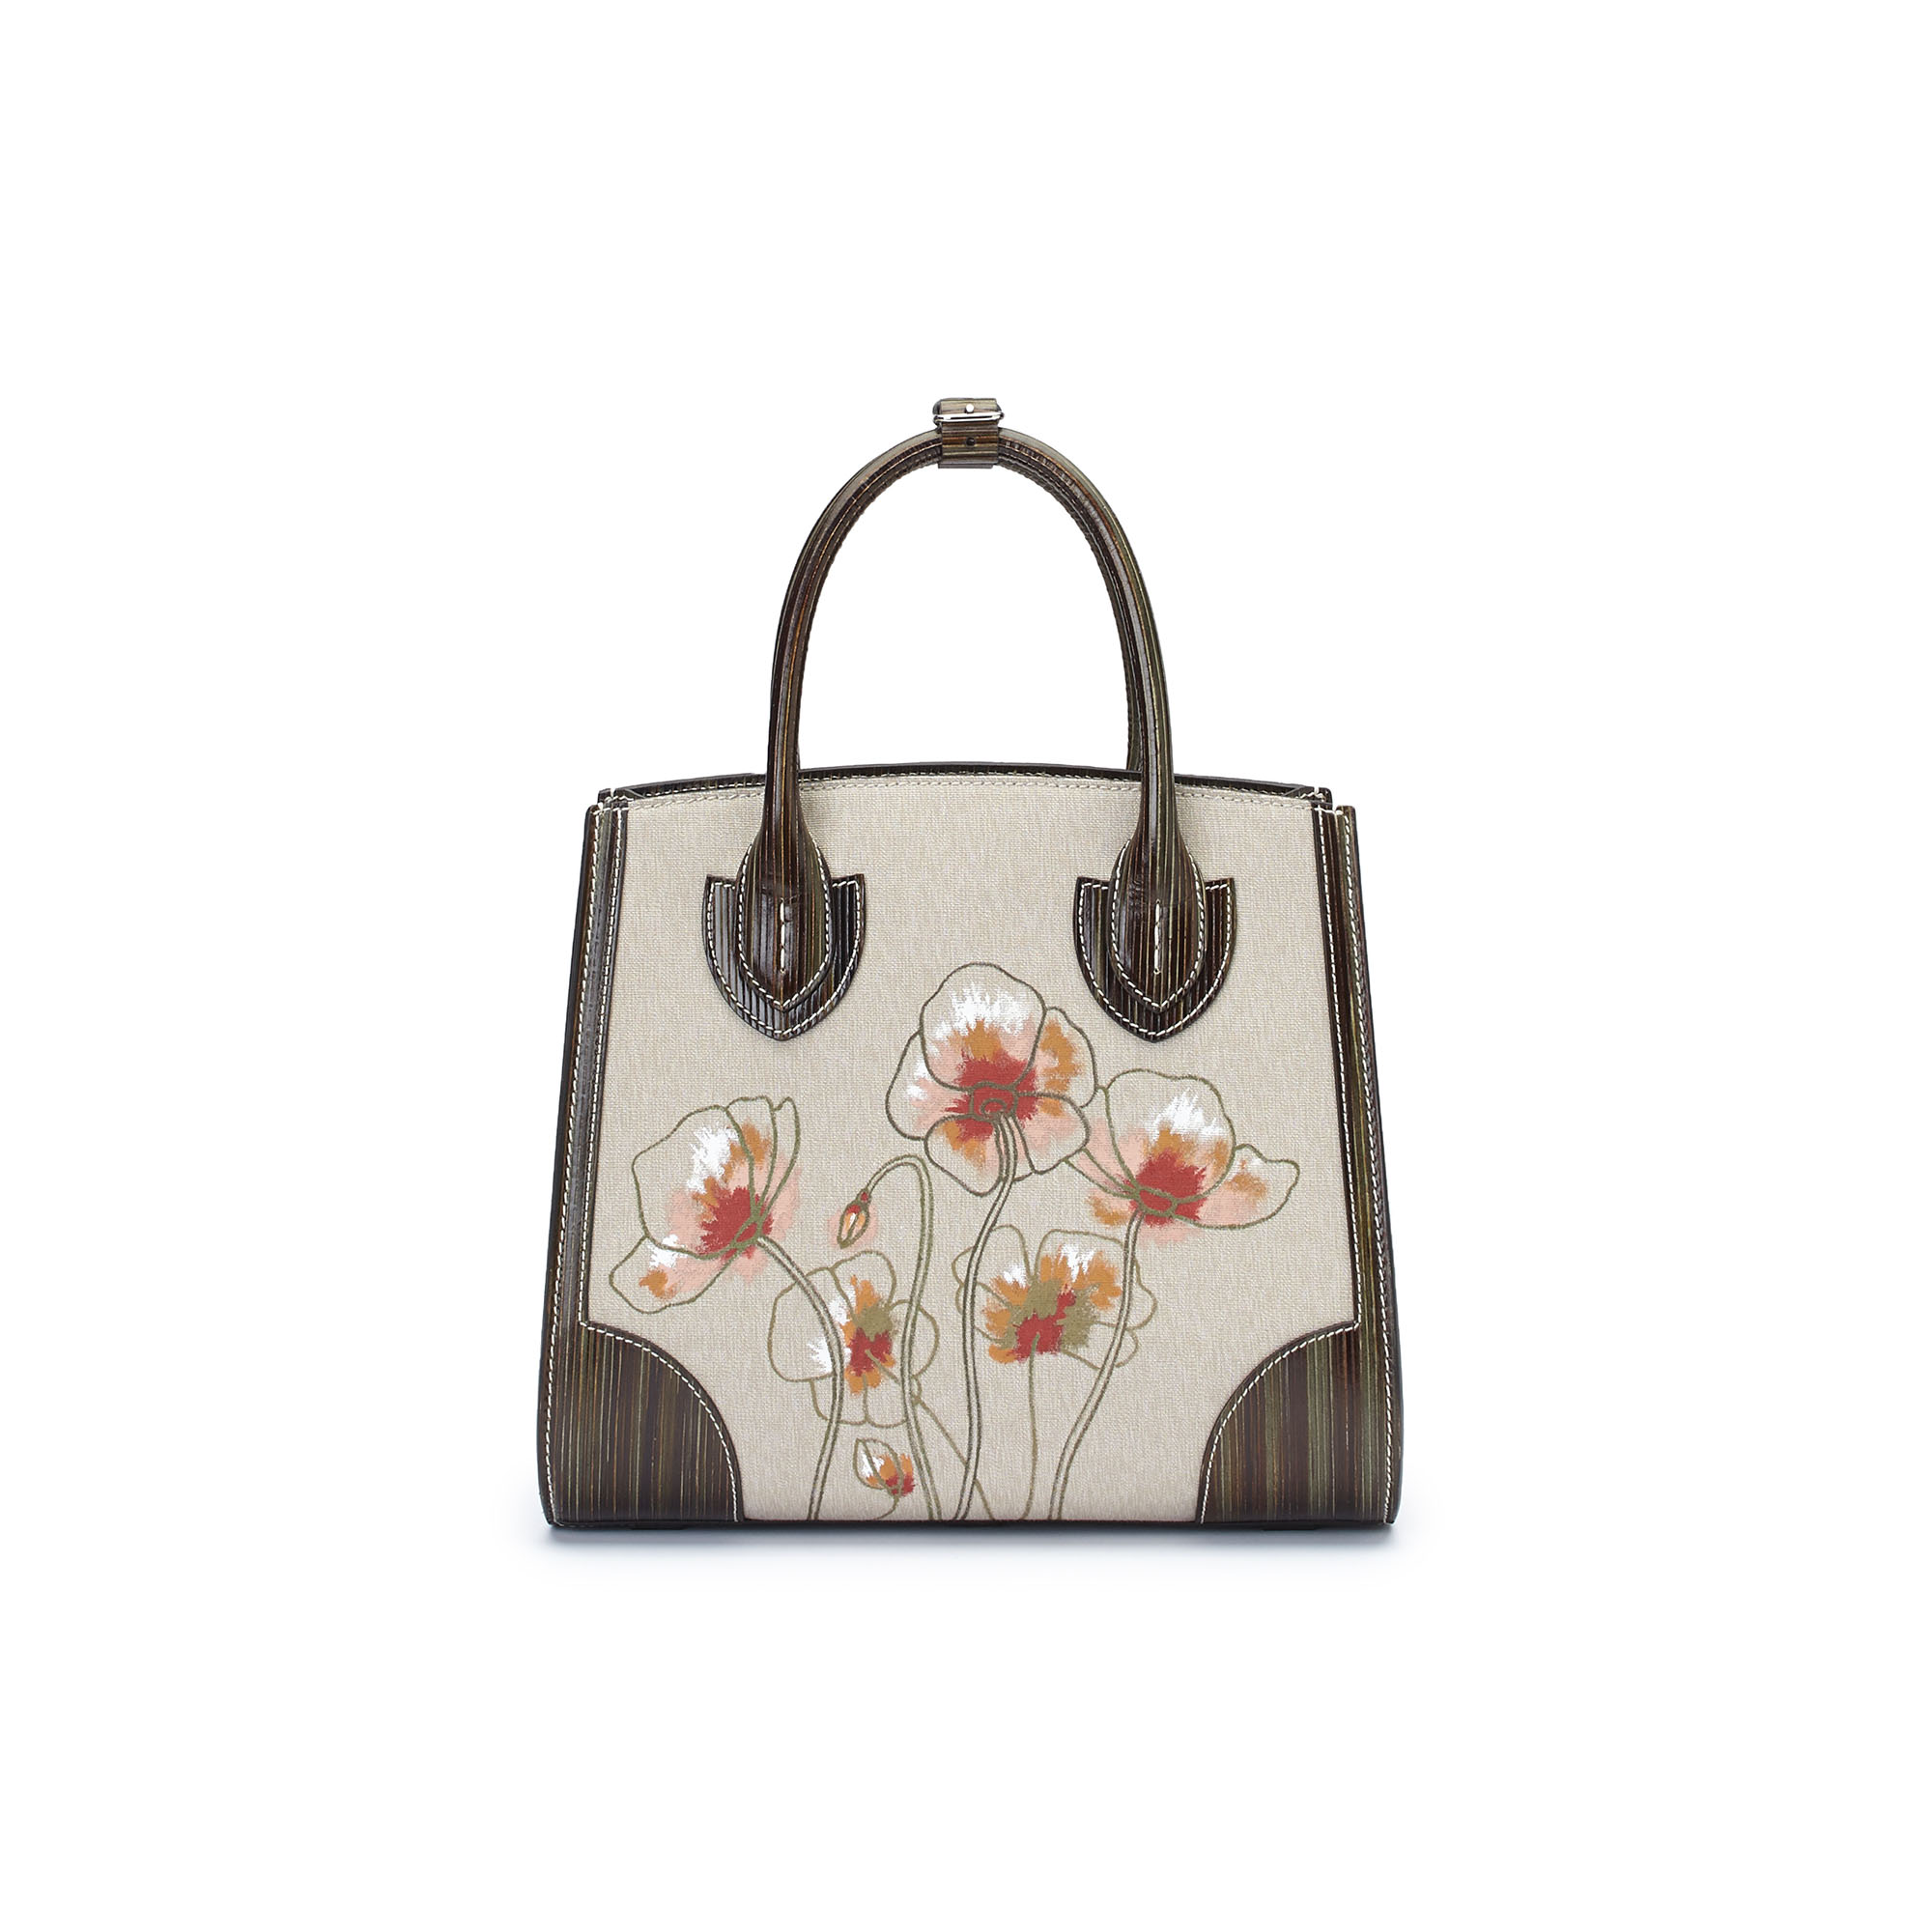 The military green with hand painted poppy flowers wood leather canvas Darcy bag by Bertoni 1949 01